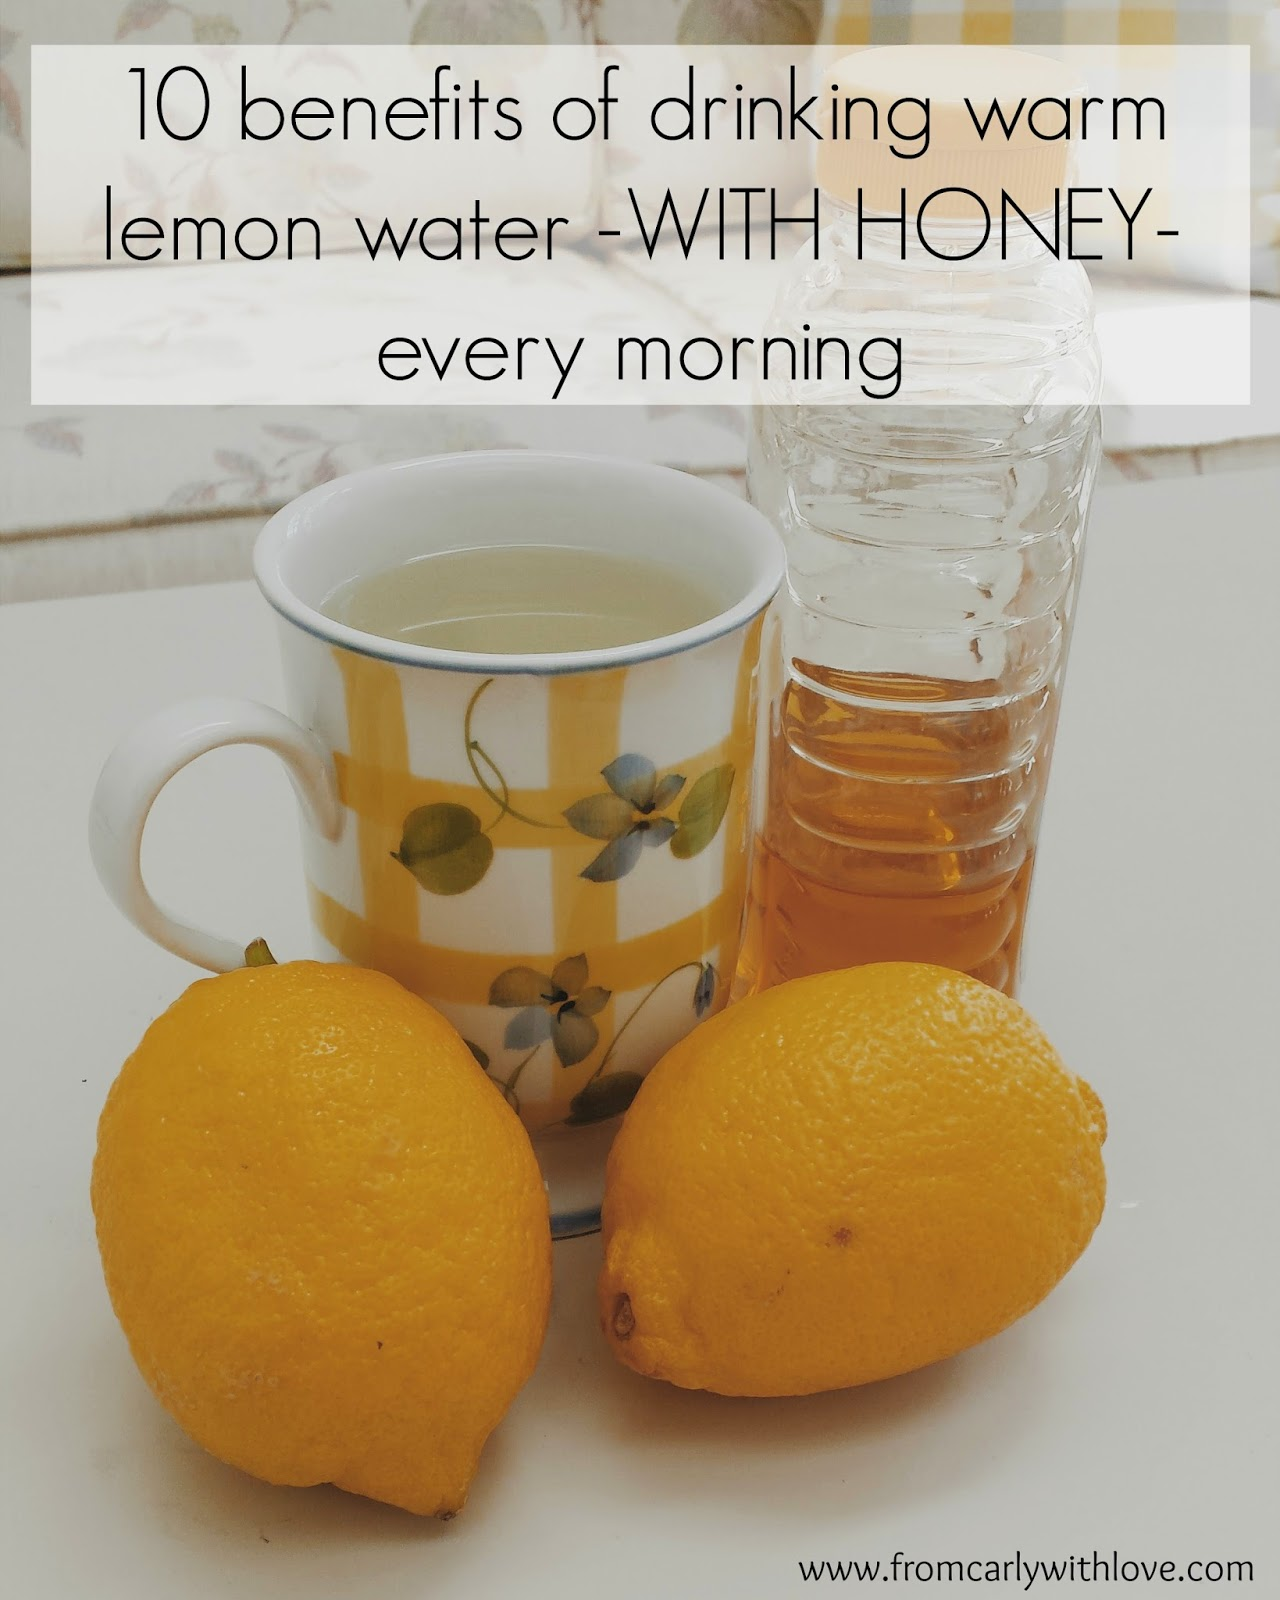 10 benefits of drinking warm lemon water with honey every morning